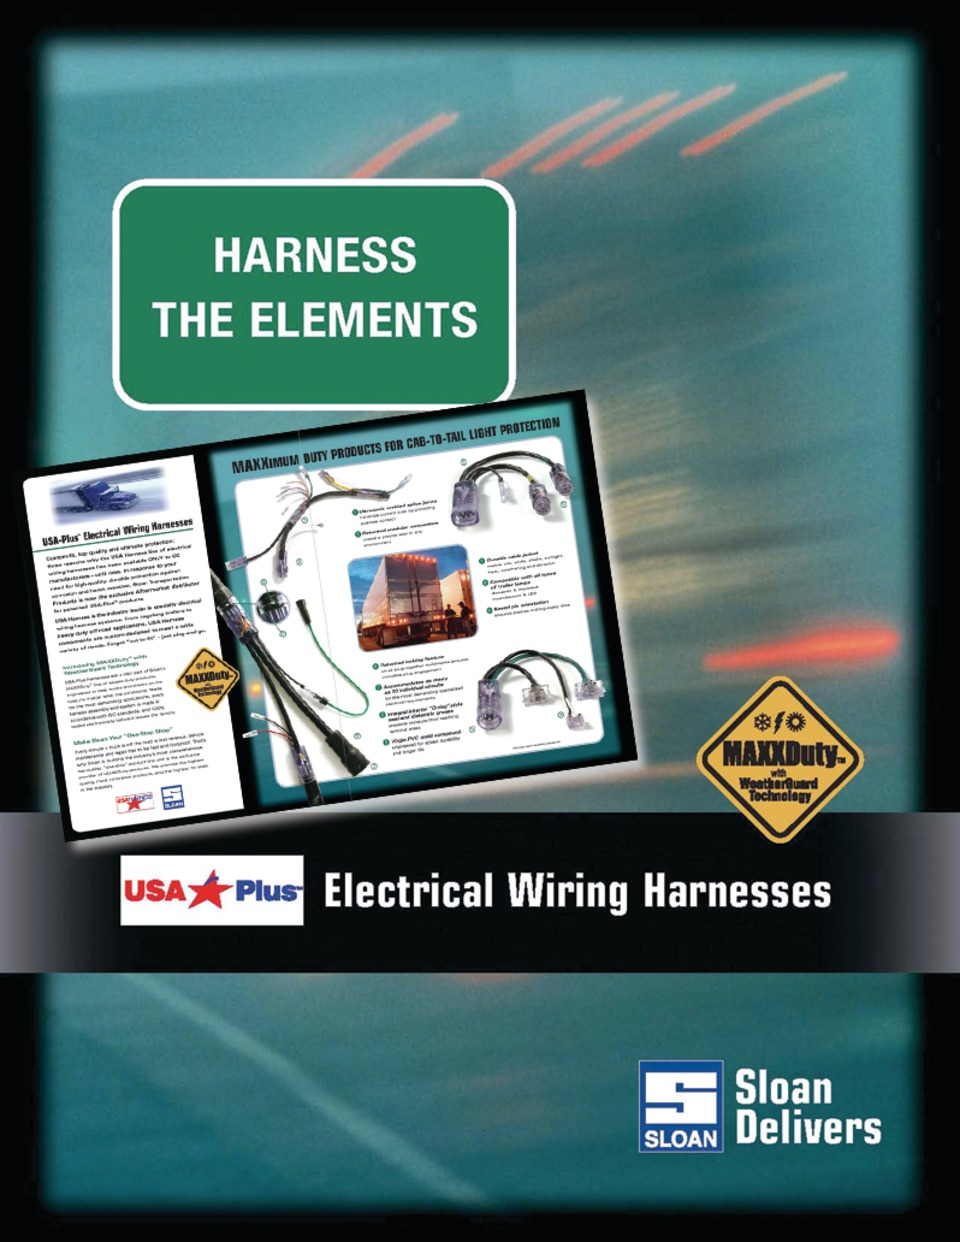 Peachy Sloan Transportation Products Usa Plus Electrical Wiring Harnesses Wiring 101 Archstreekradiomeanderfmnl